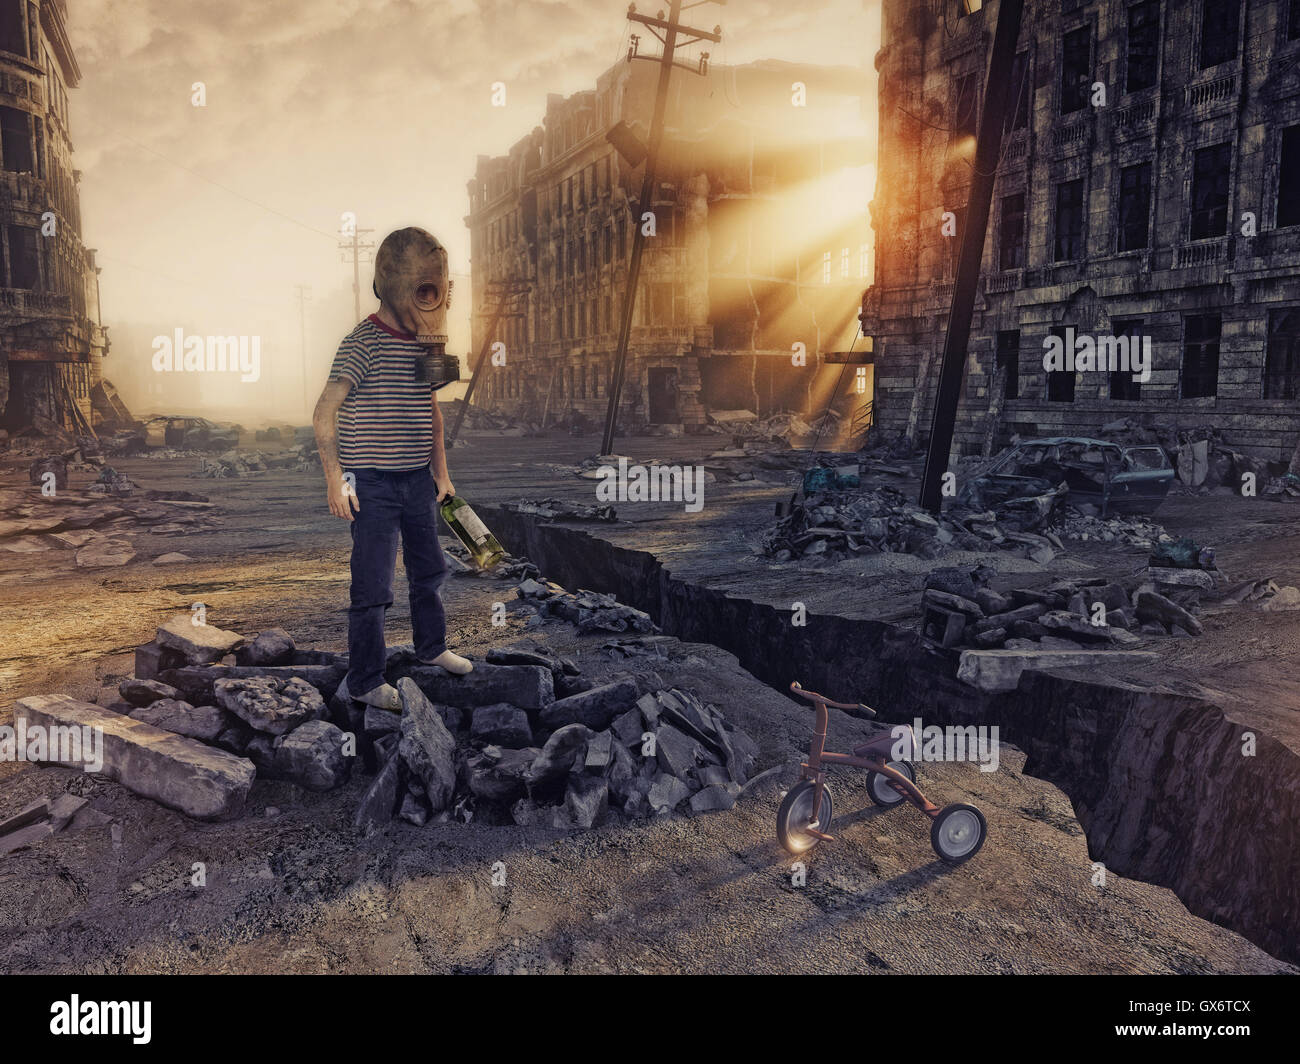 ruins of a city with and the boy  in the street. 3d illustration concept - Stock Image